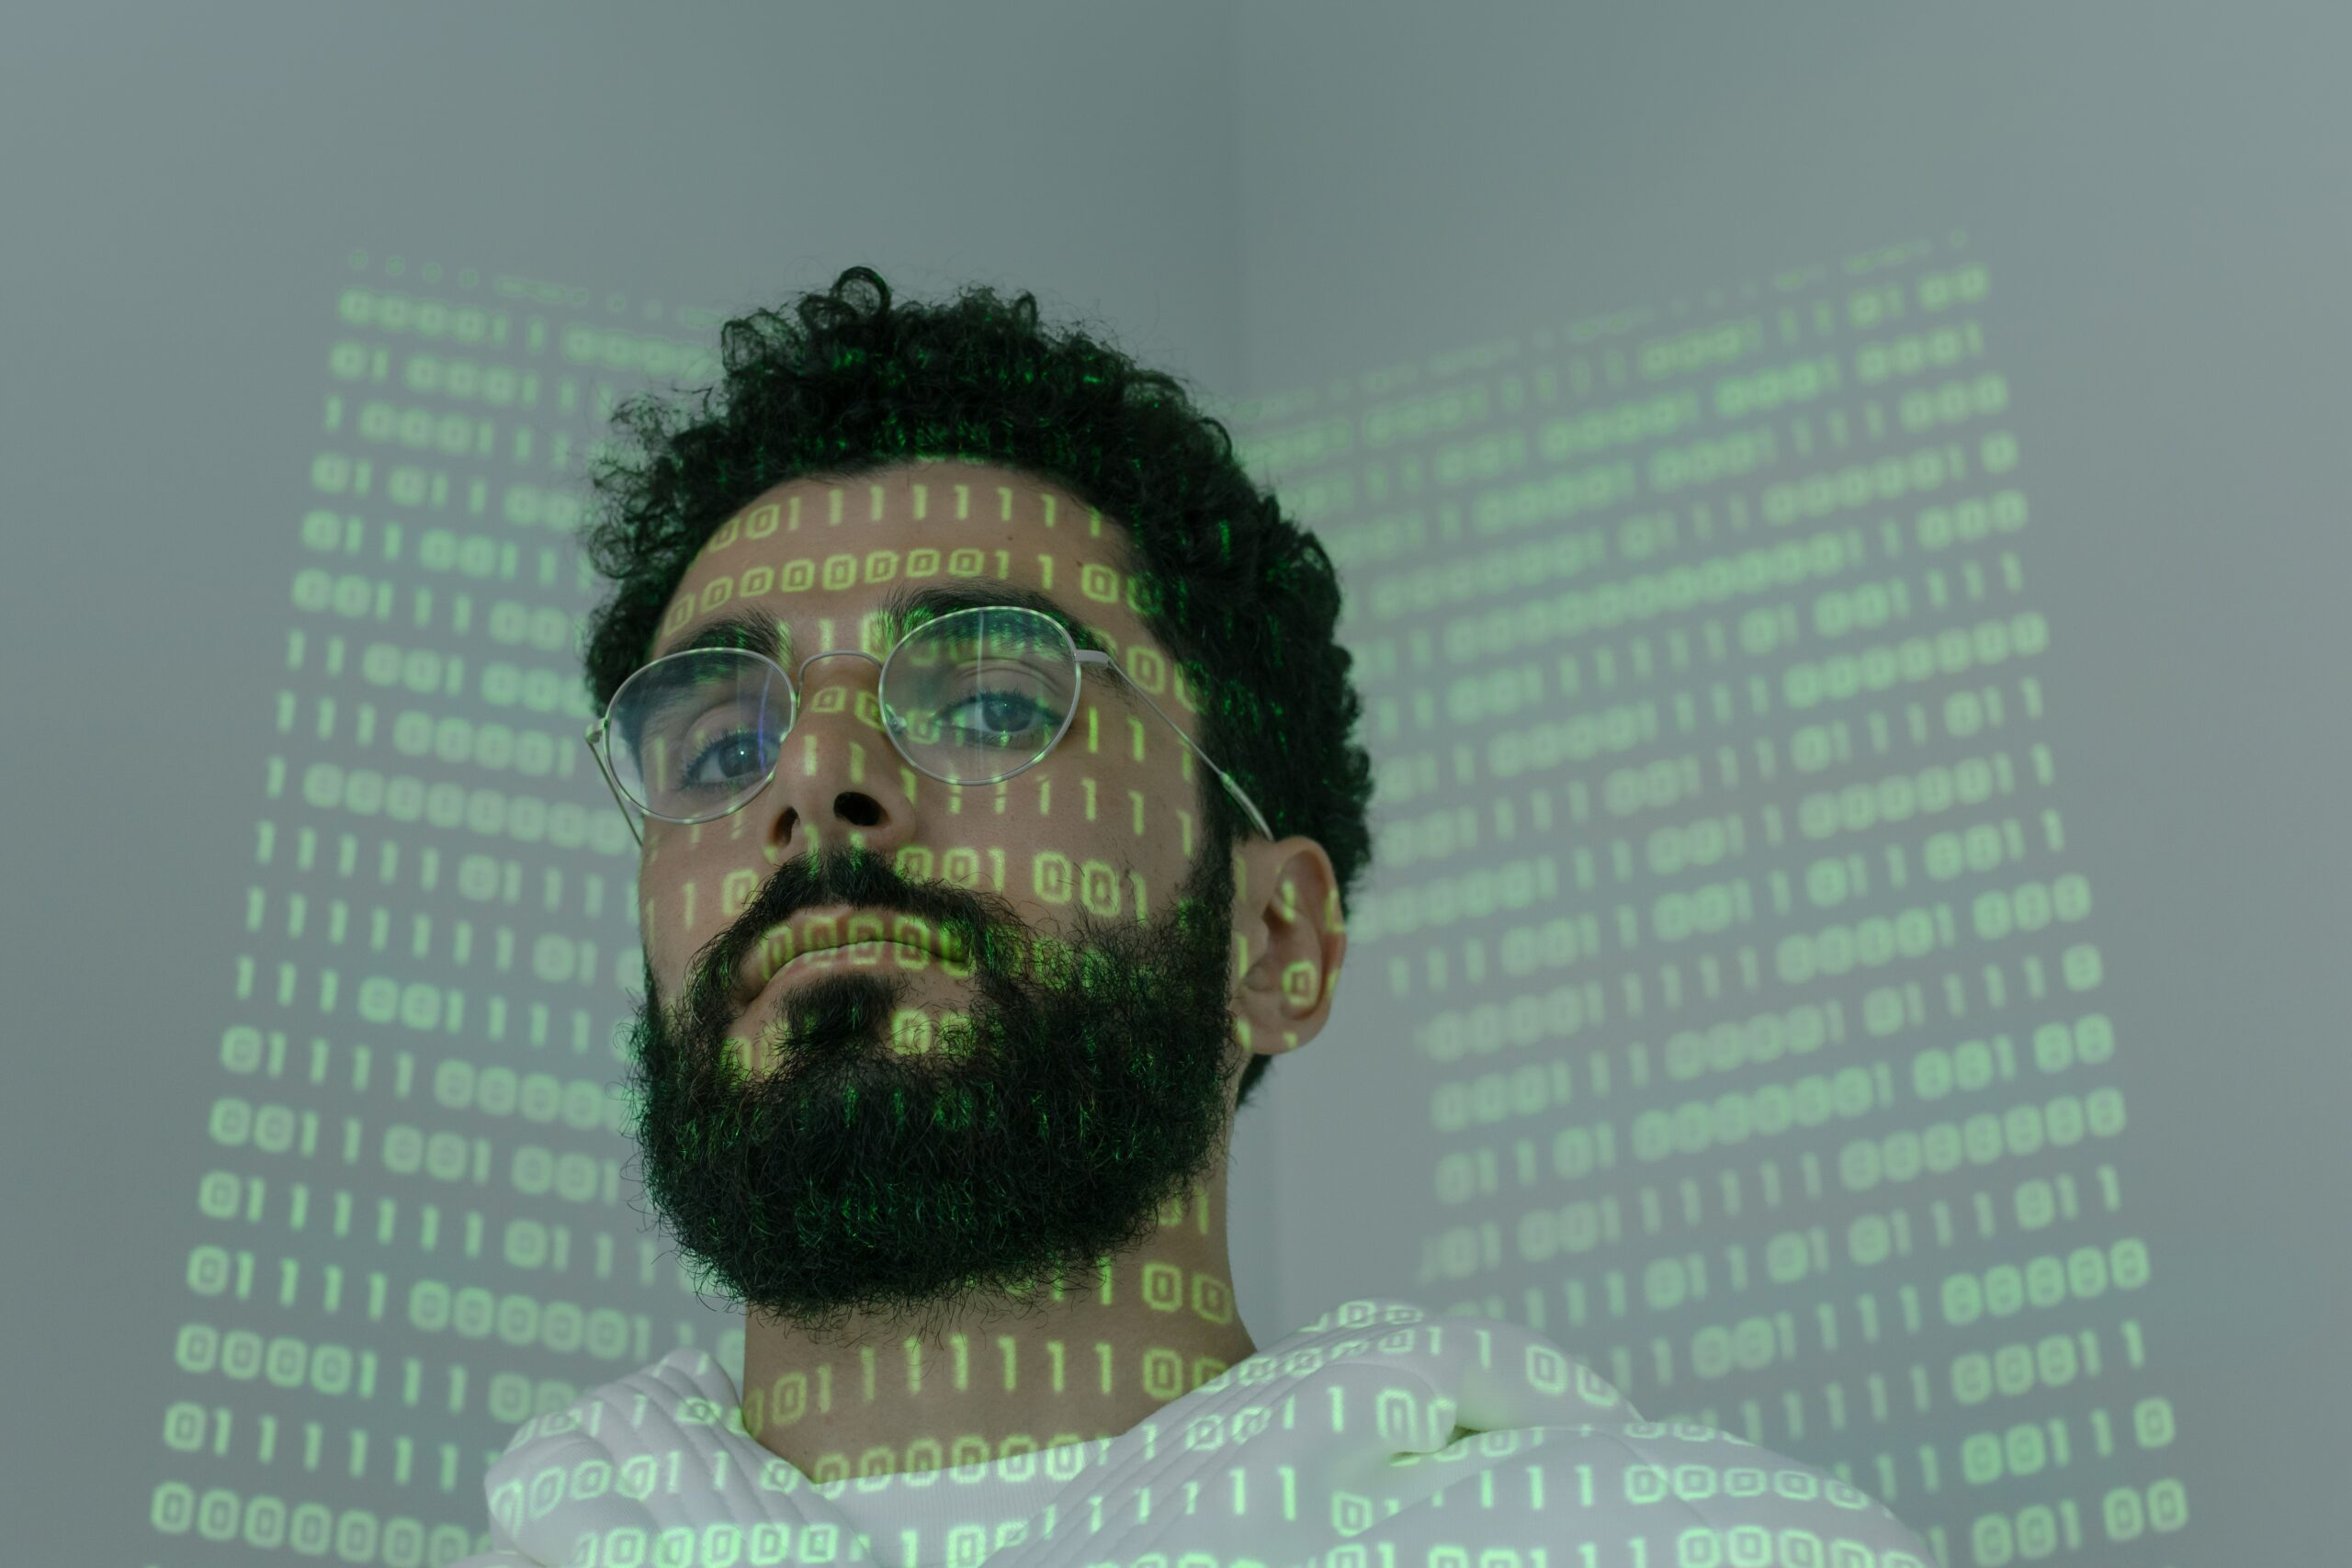 man with code projected on his face